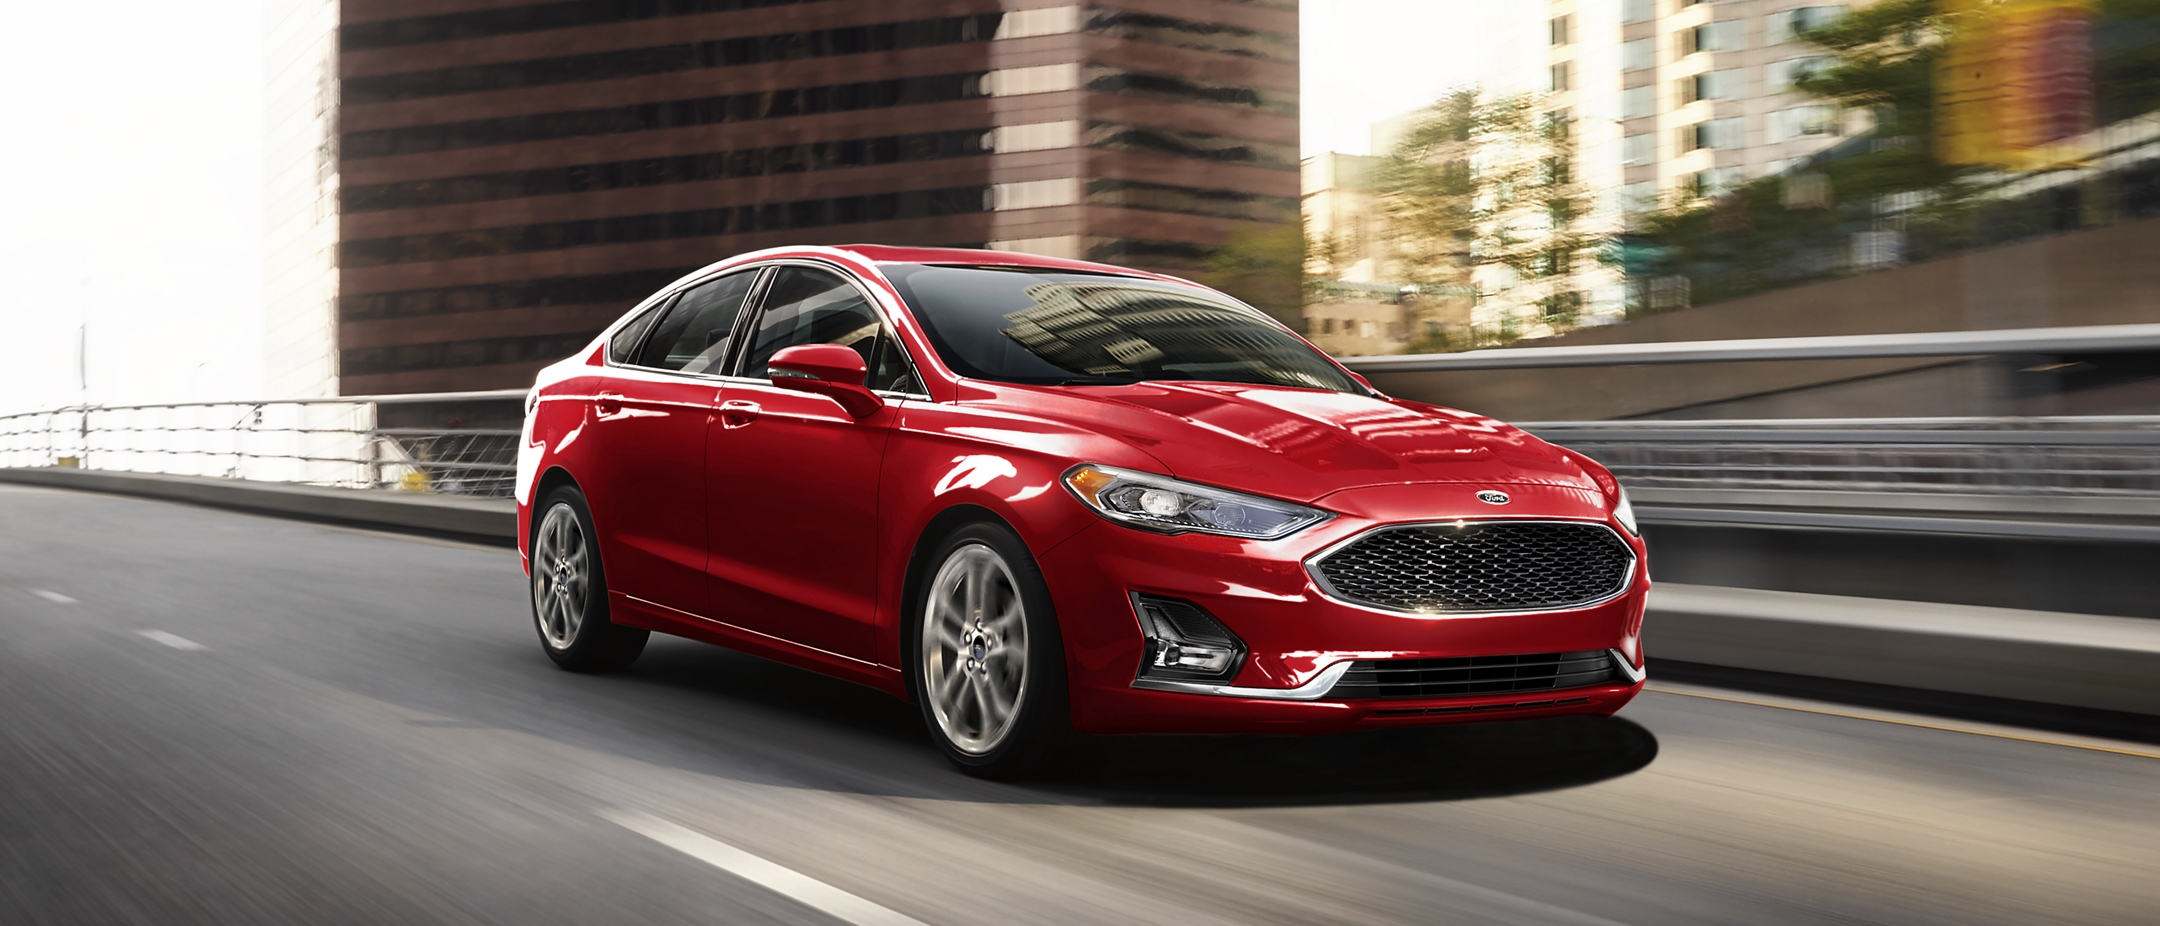 A 2020 Ford Fusion Hybrid in Rapid Red being driven down a city street